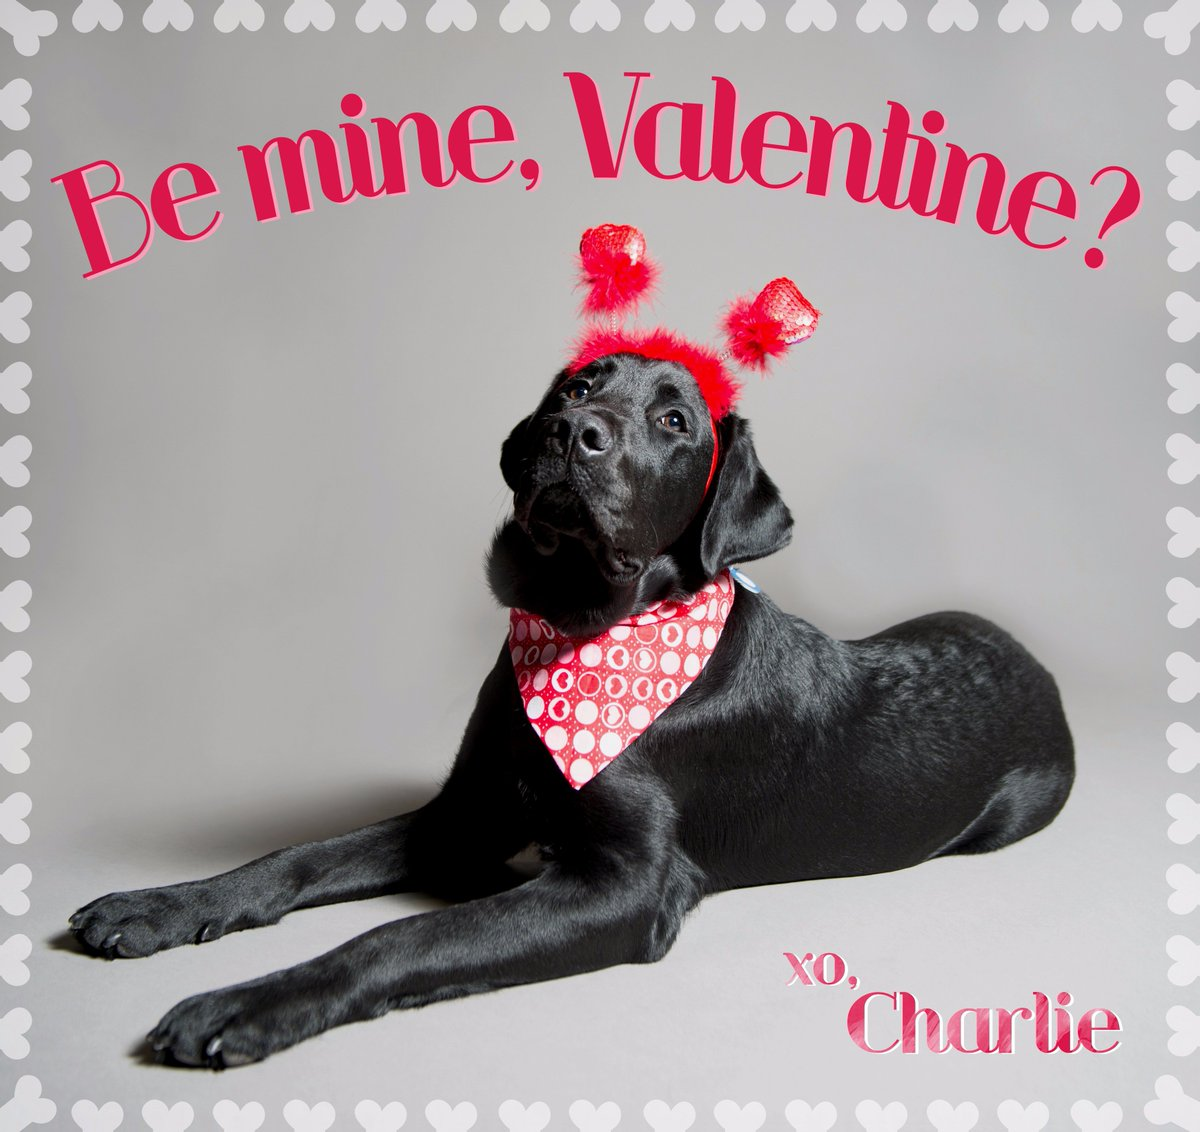 Celebrate #ValentinesDay with some good old fashioned puppy love! @TODAYPuppy